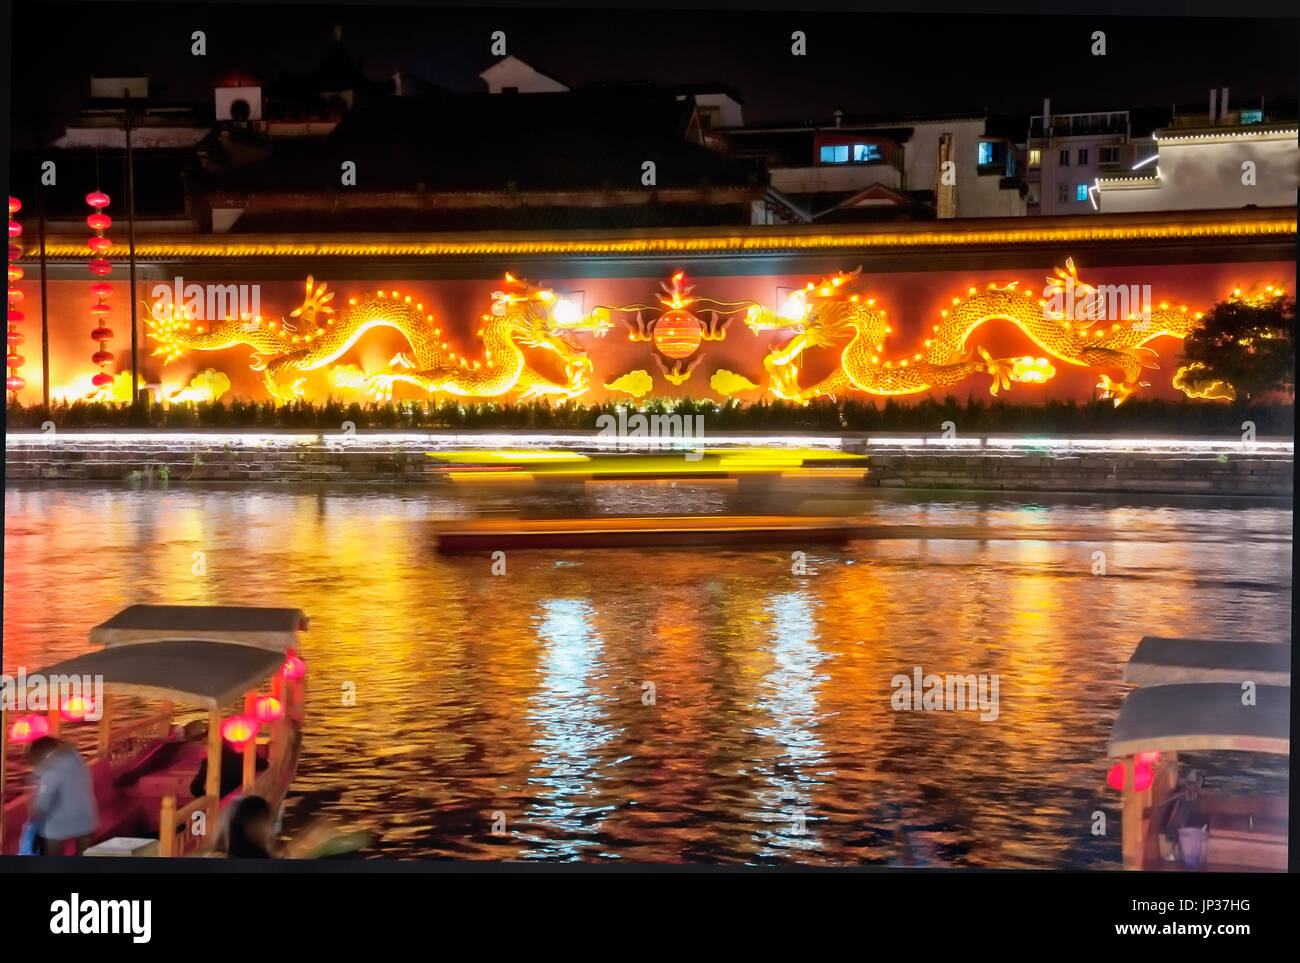 Golden dragons on a wall lit up at night within the city of Nanjing on a sunny winter day in the Qinhuai River scenic area in Jiangsu province China. - Stock Image